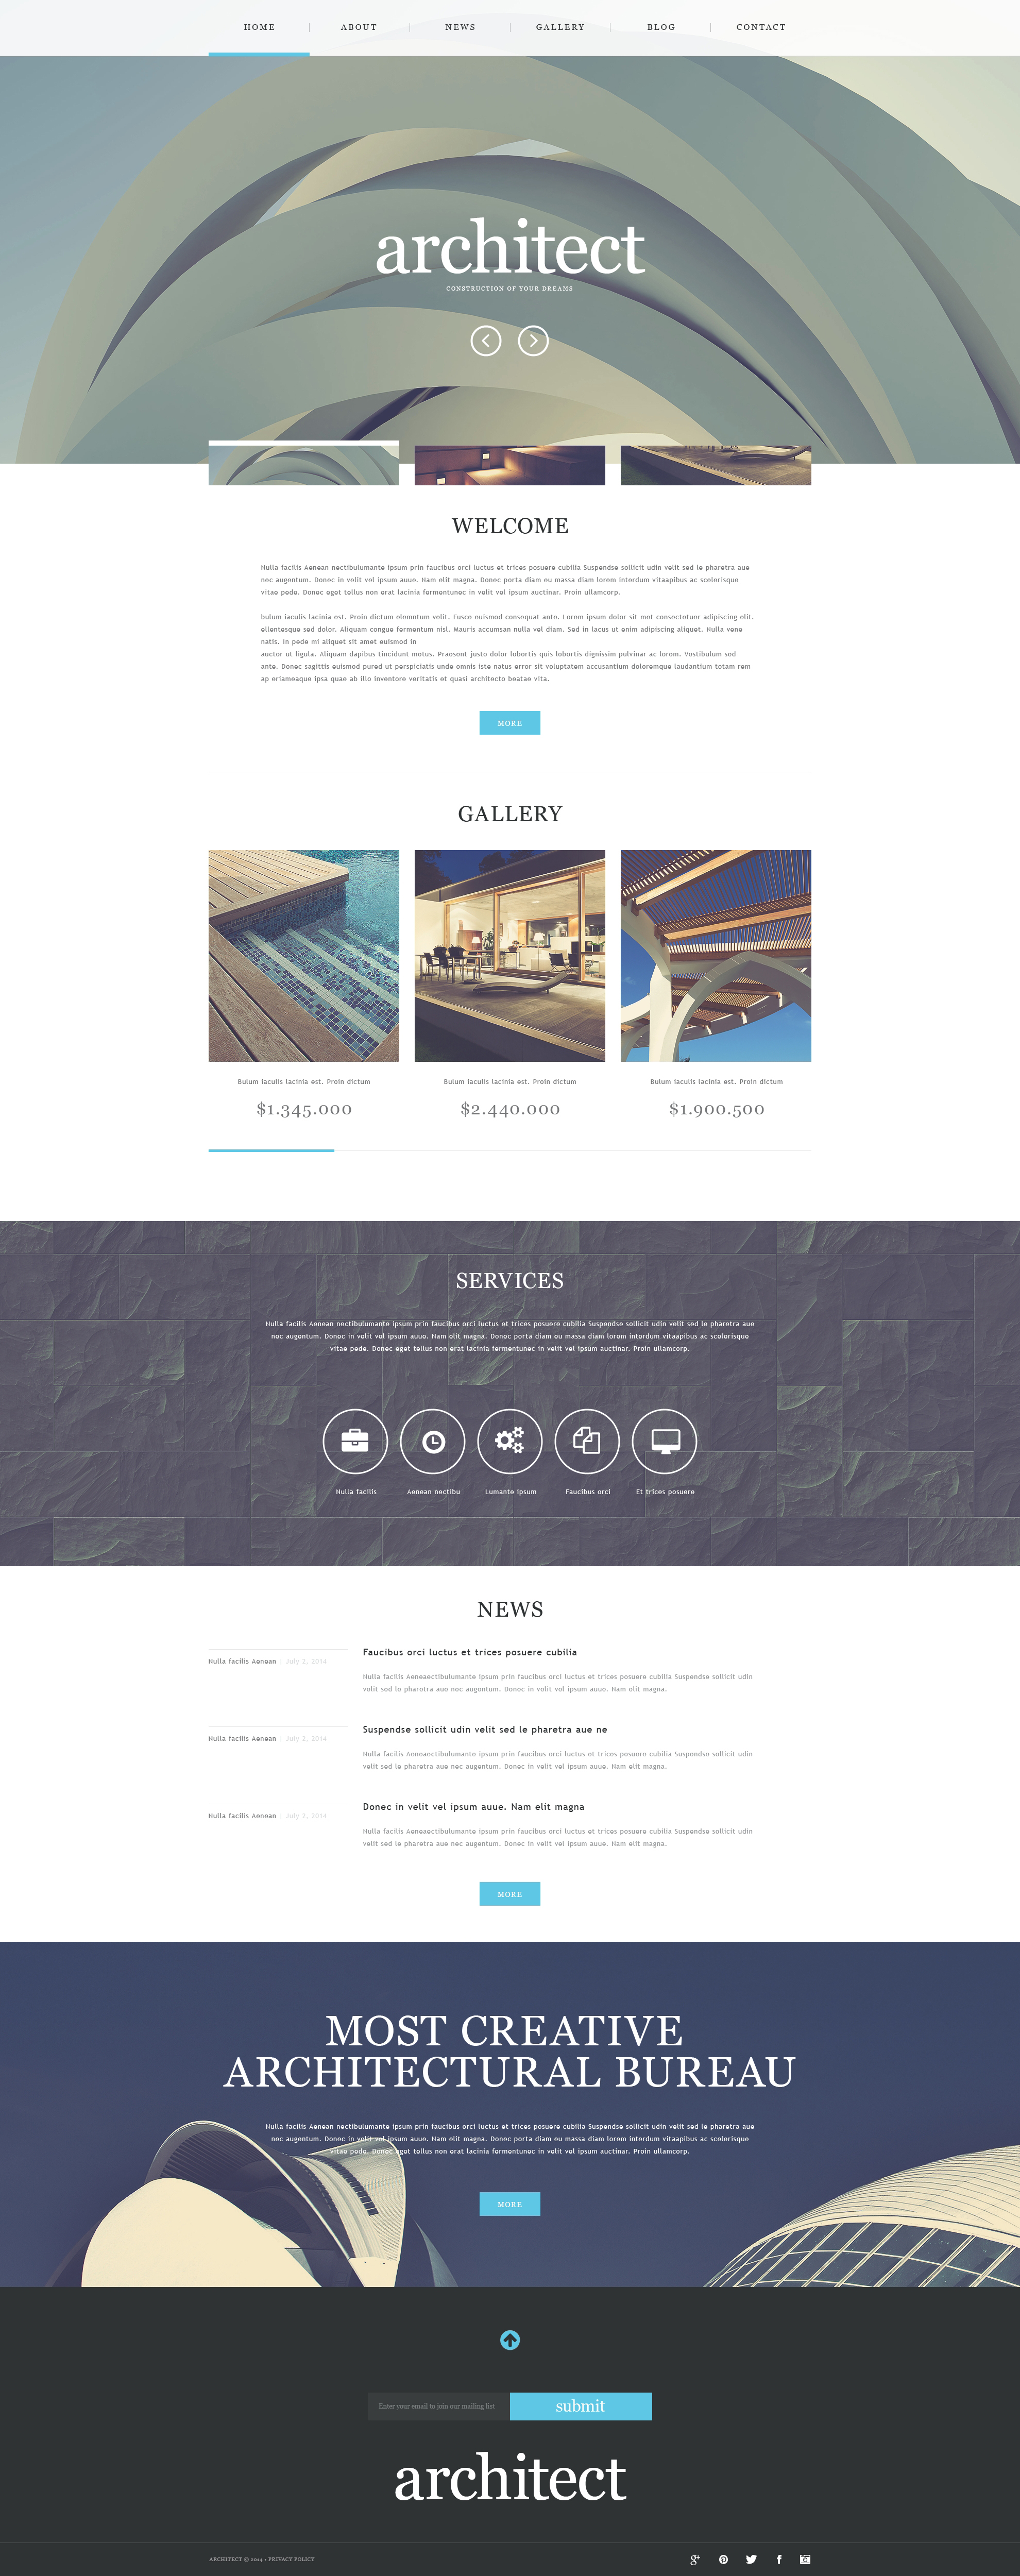 Muse Template over Bouwbedrijf №51317